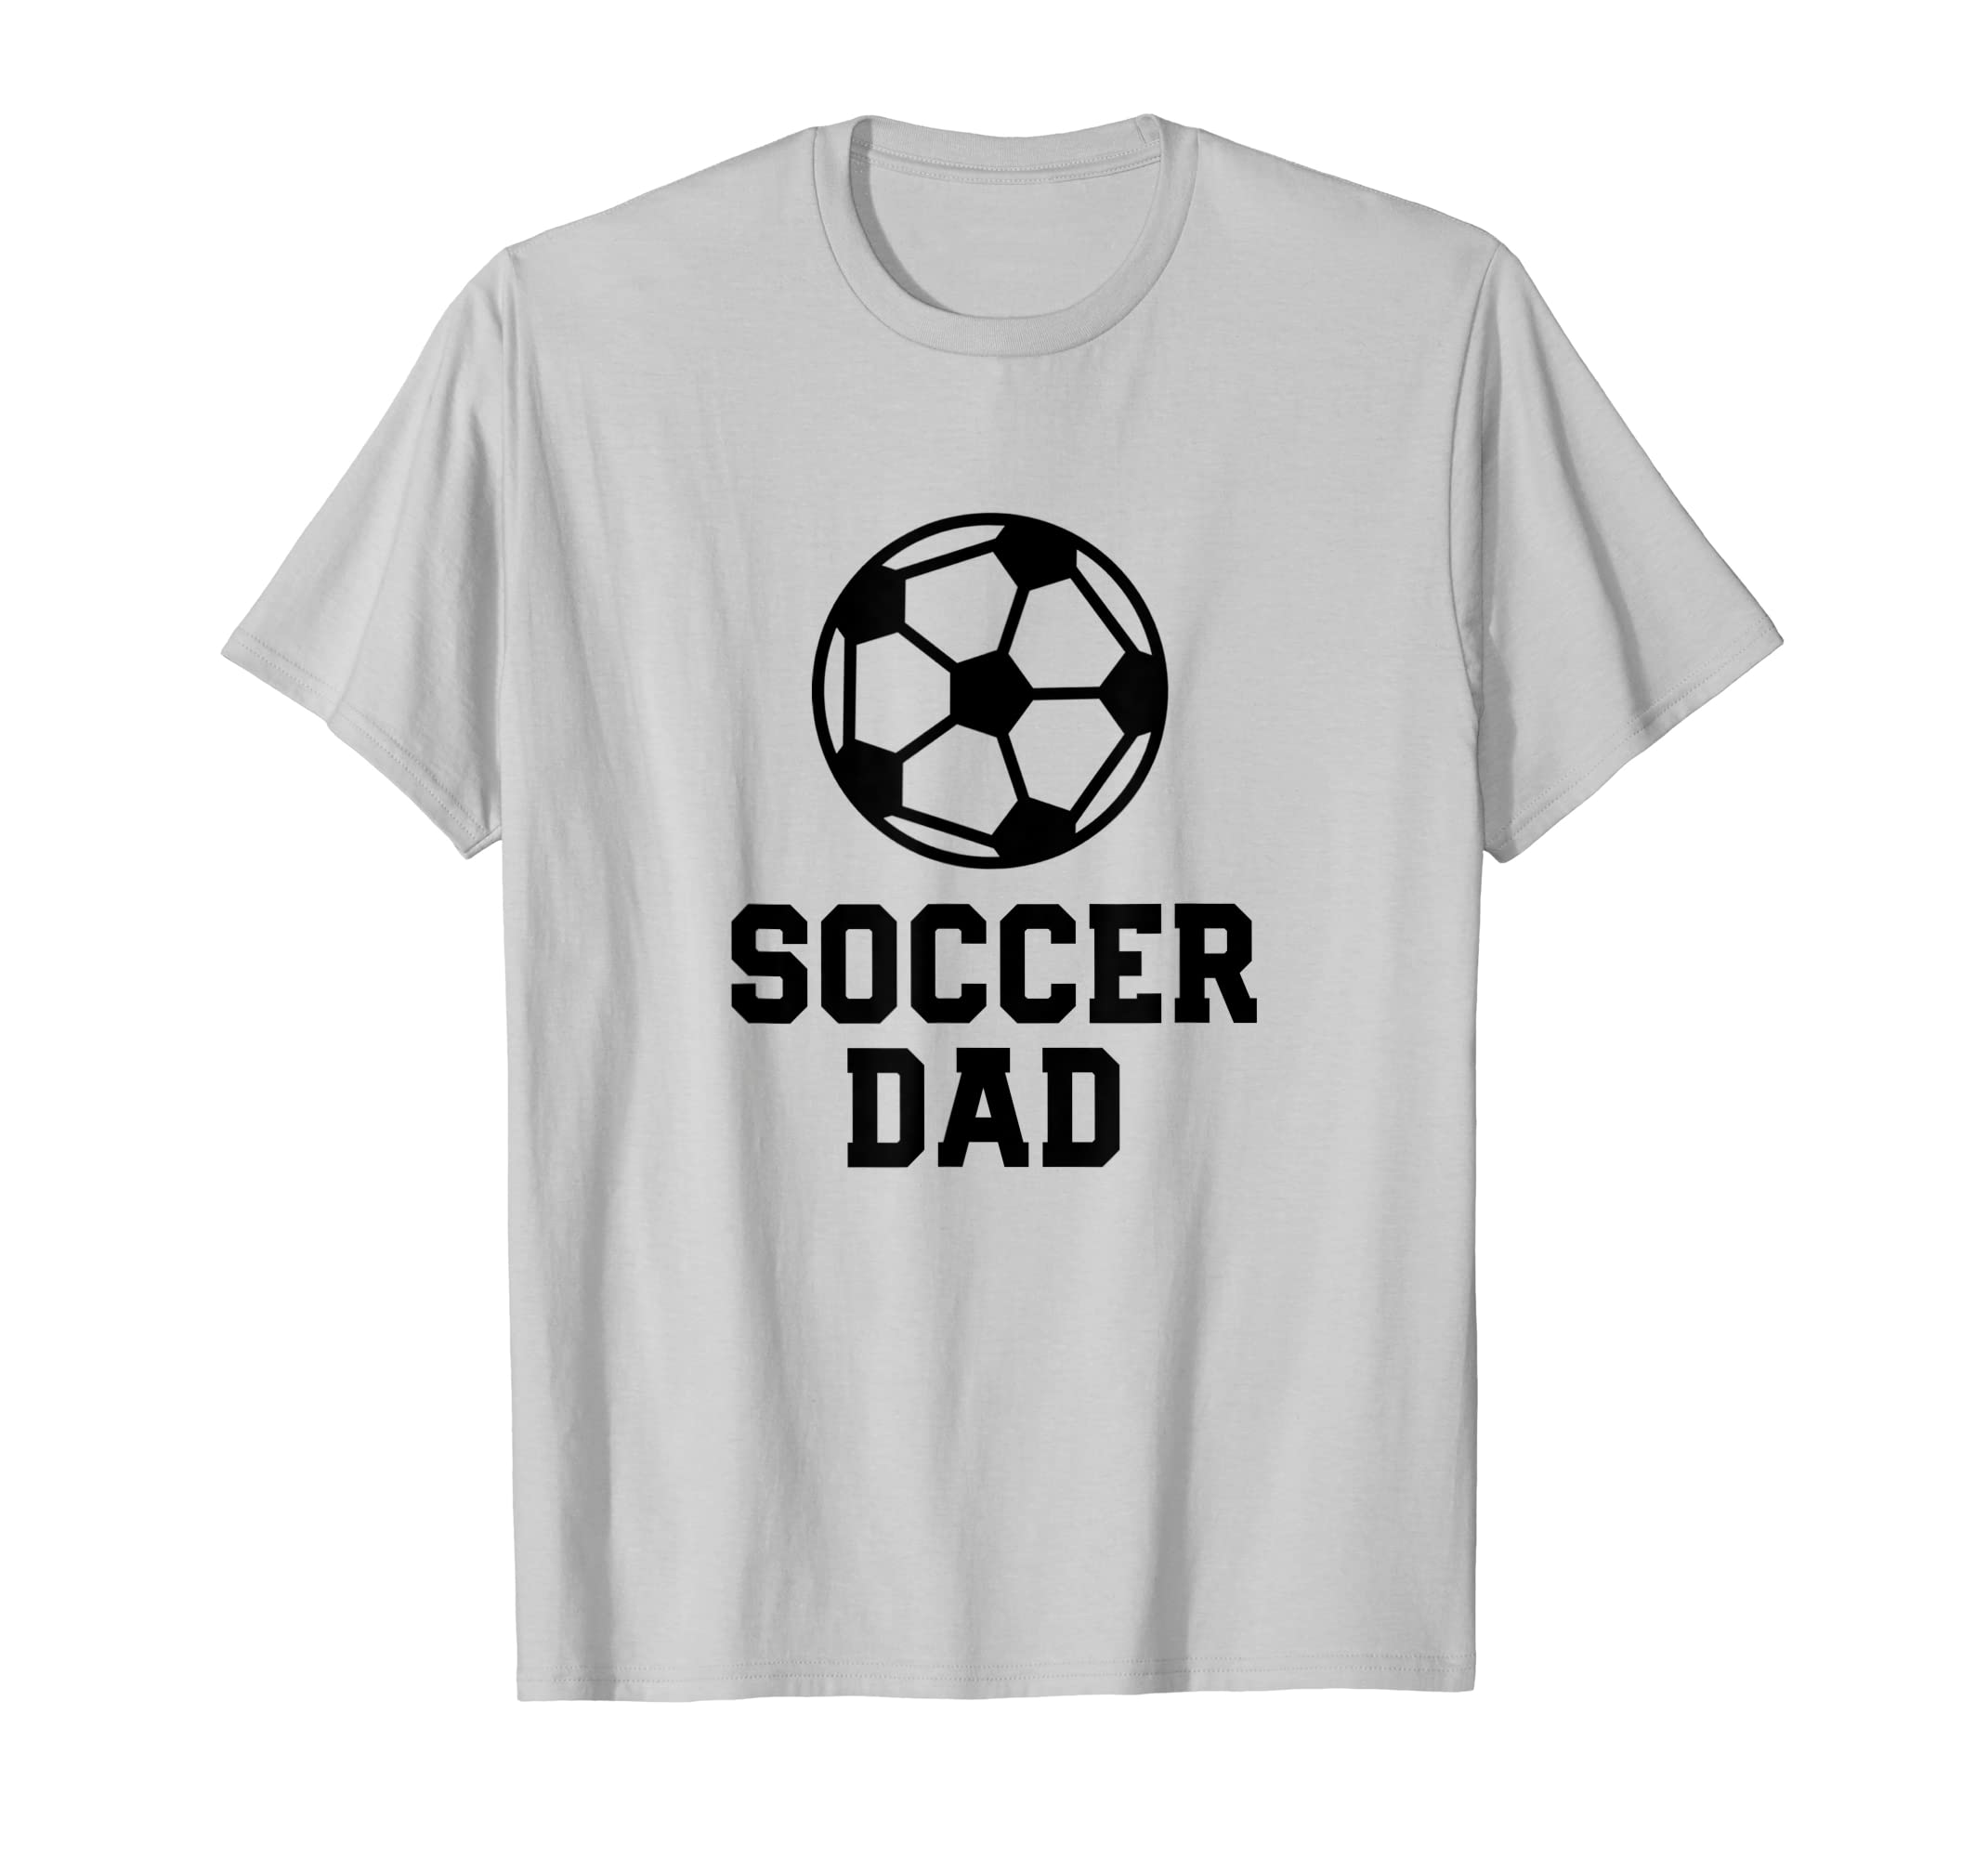 87becb36 Amazon.com: Mens Funny Dad Soccer Fan Shirt for Men - Soccer Dad T-Shirt:  Clothing